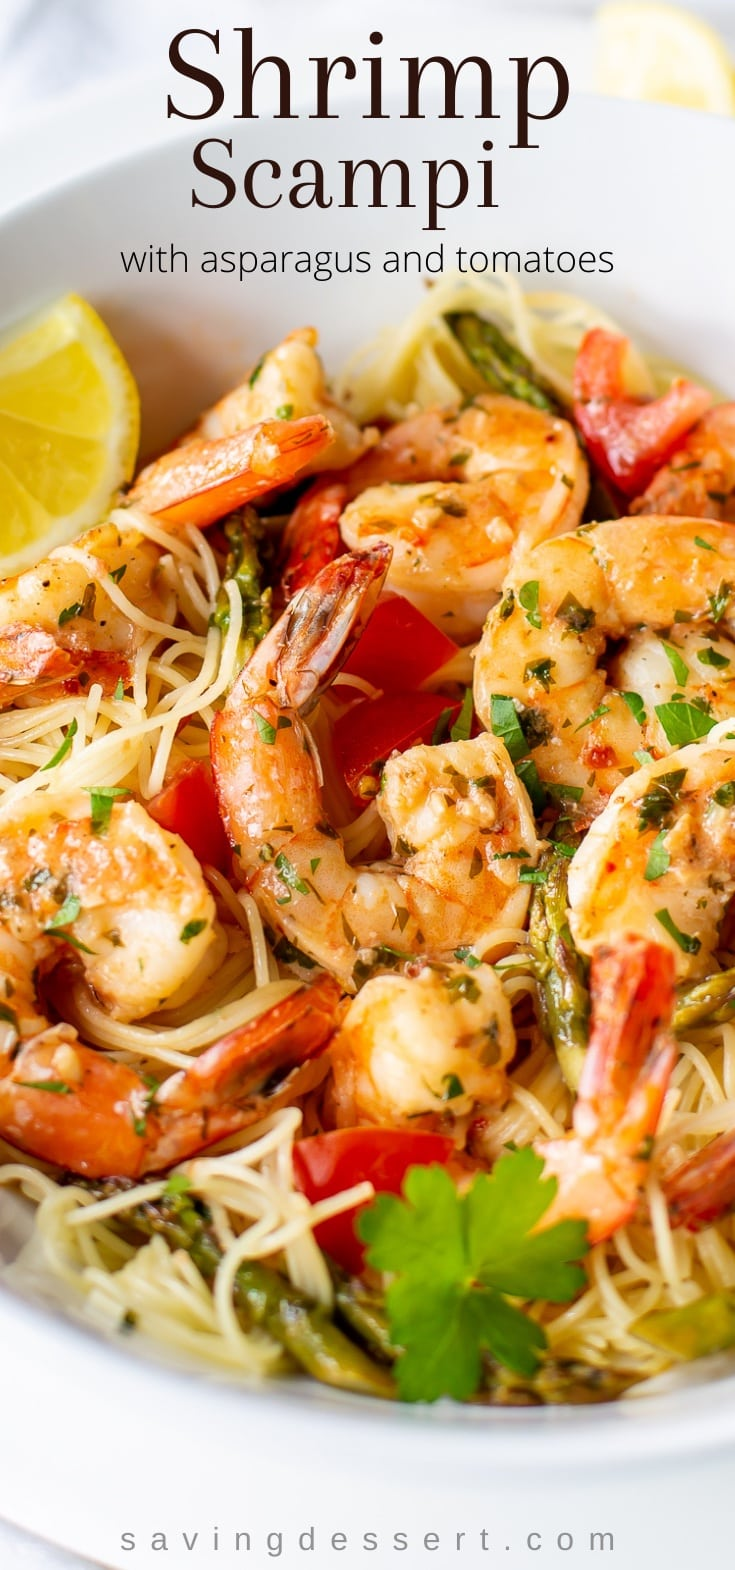 A bowl of angel hair pasta topped with garlic shrimp, tomatoes and asparagus